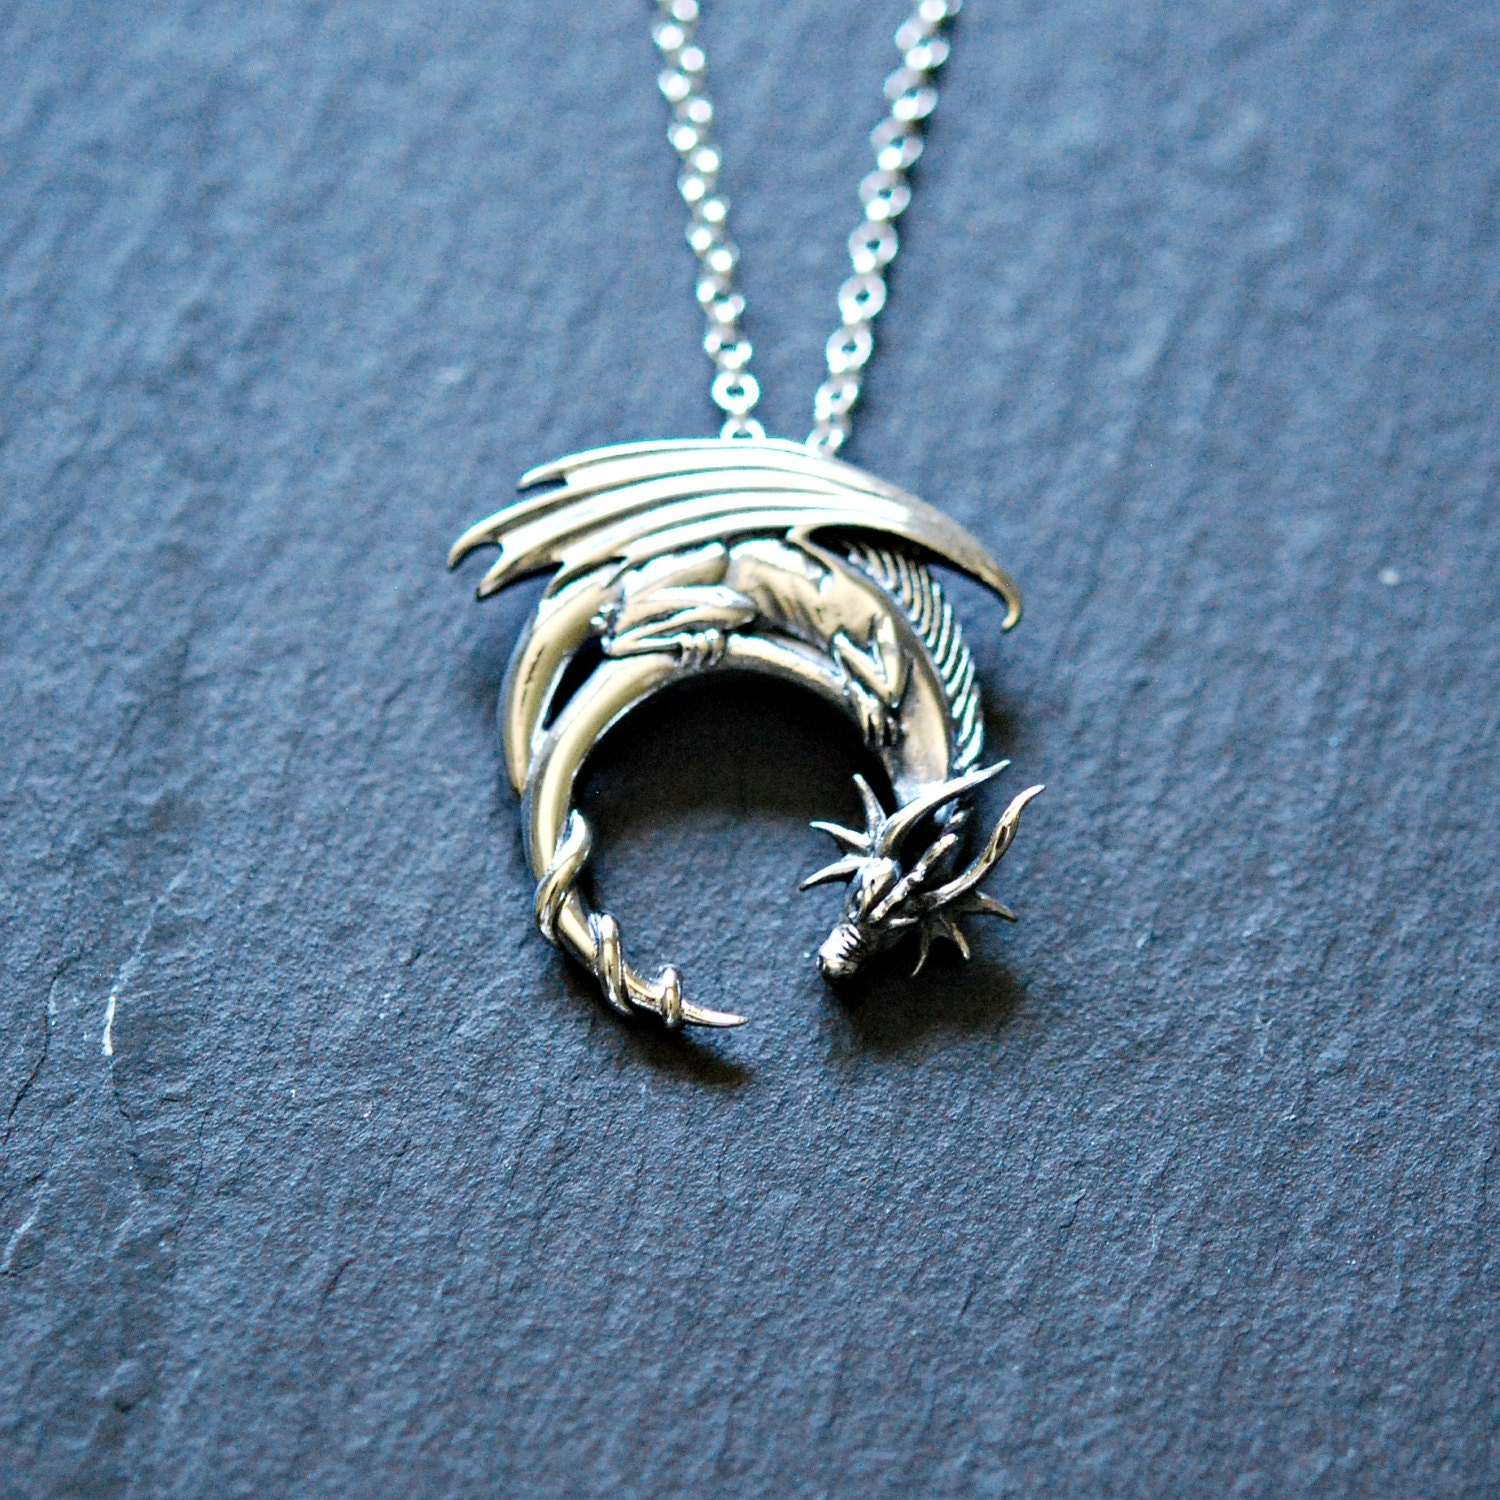 Details about  /Real Silver Dragon Shape Style Chain Sterling Pendants Necklaces Gift For Men